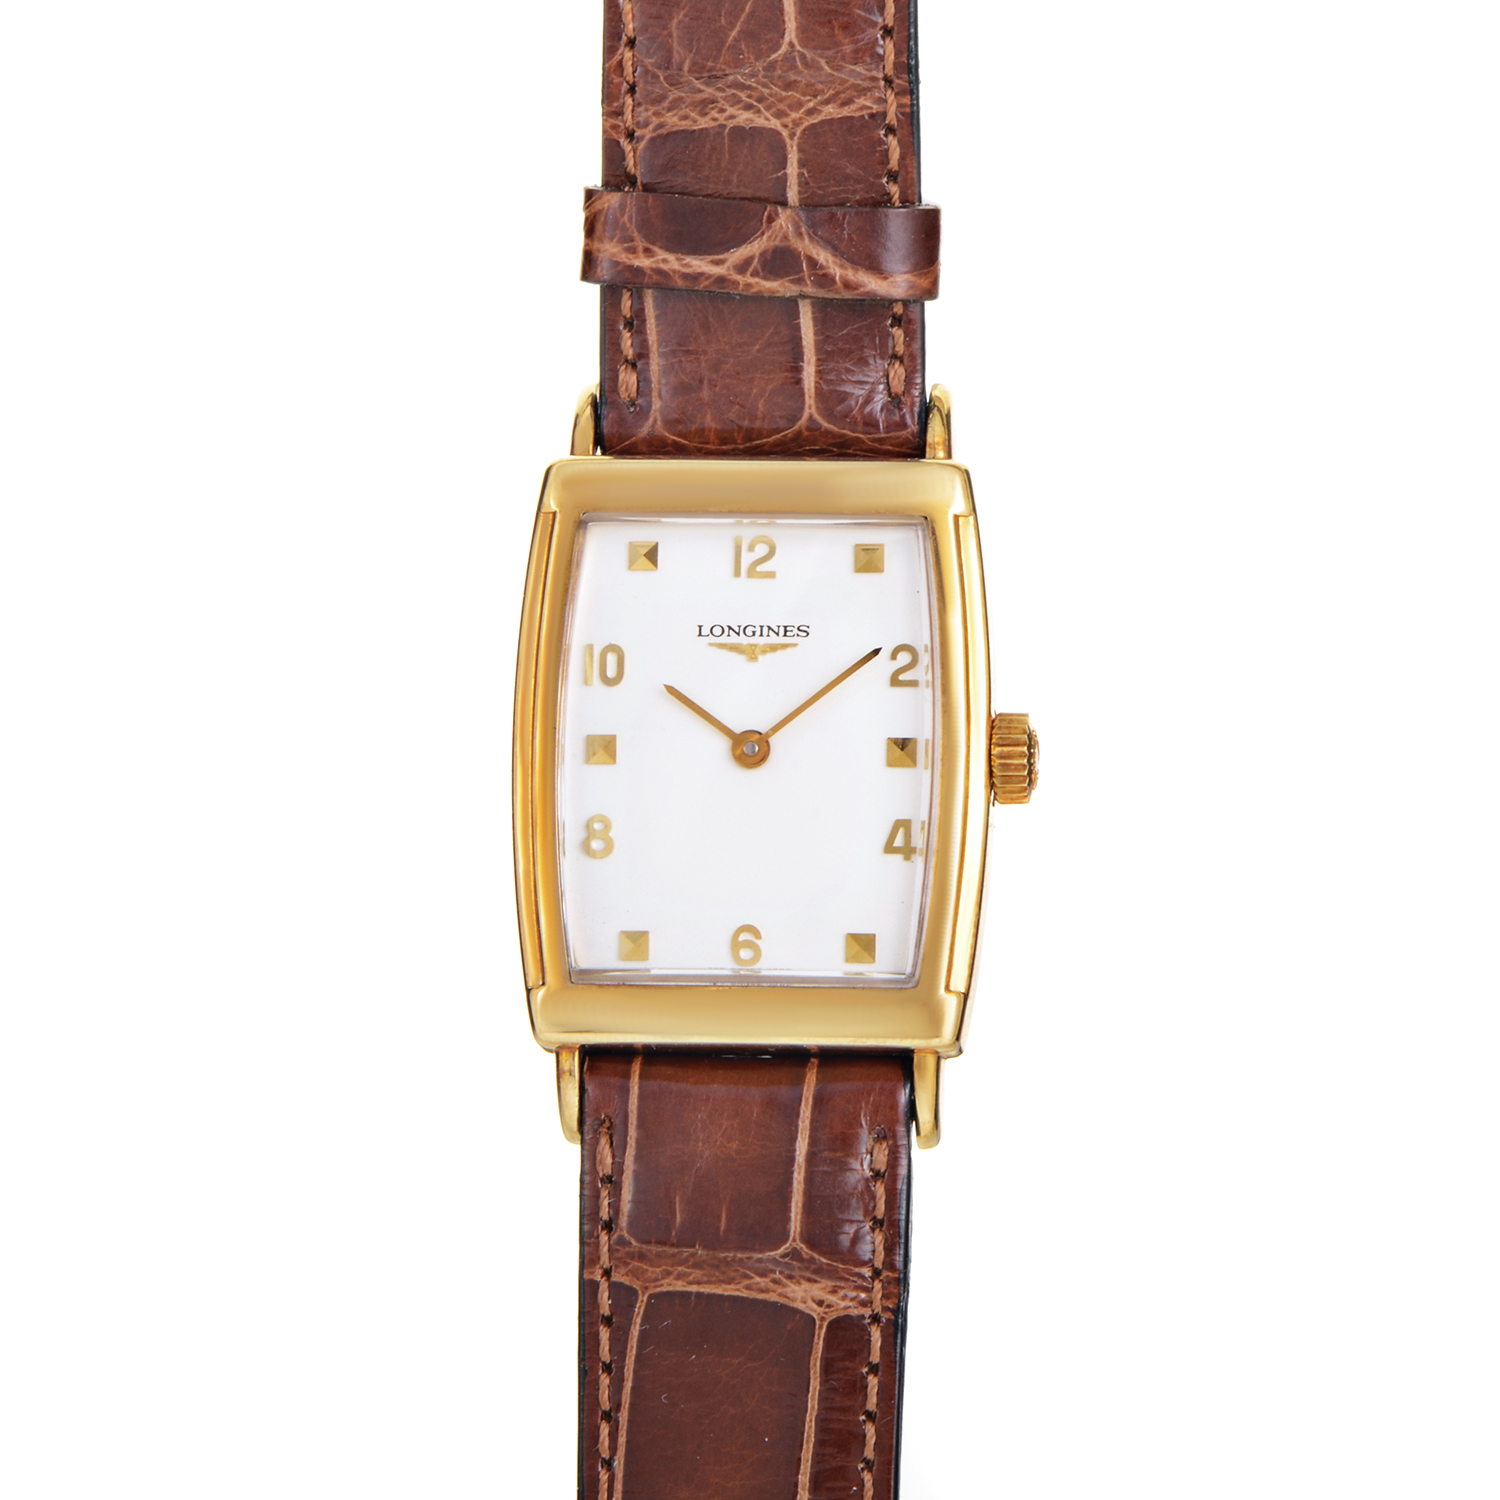 18K Yellow Gold Manual Wind Watch L79806762